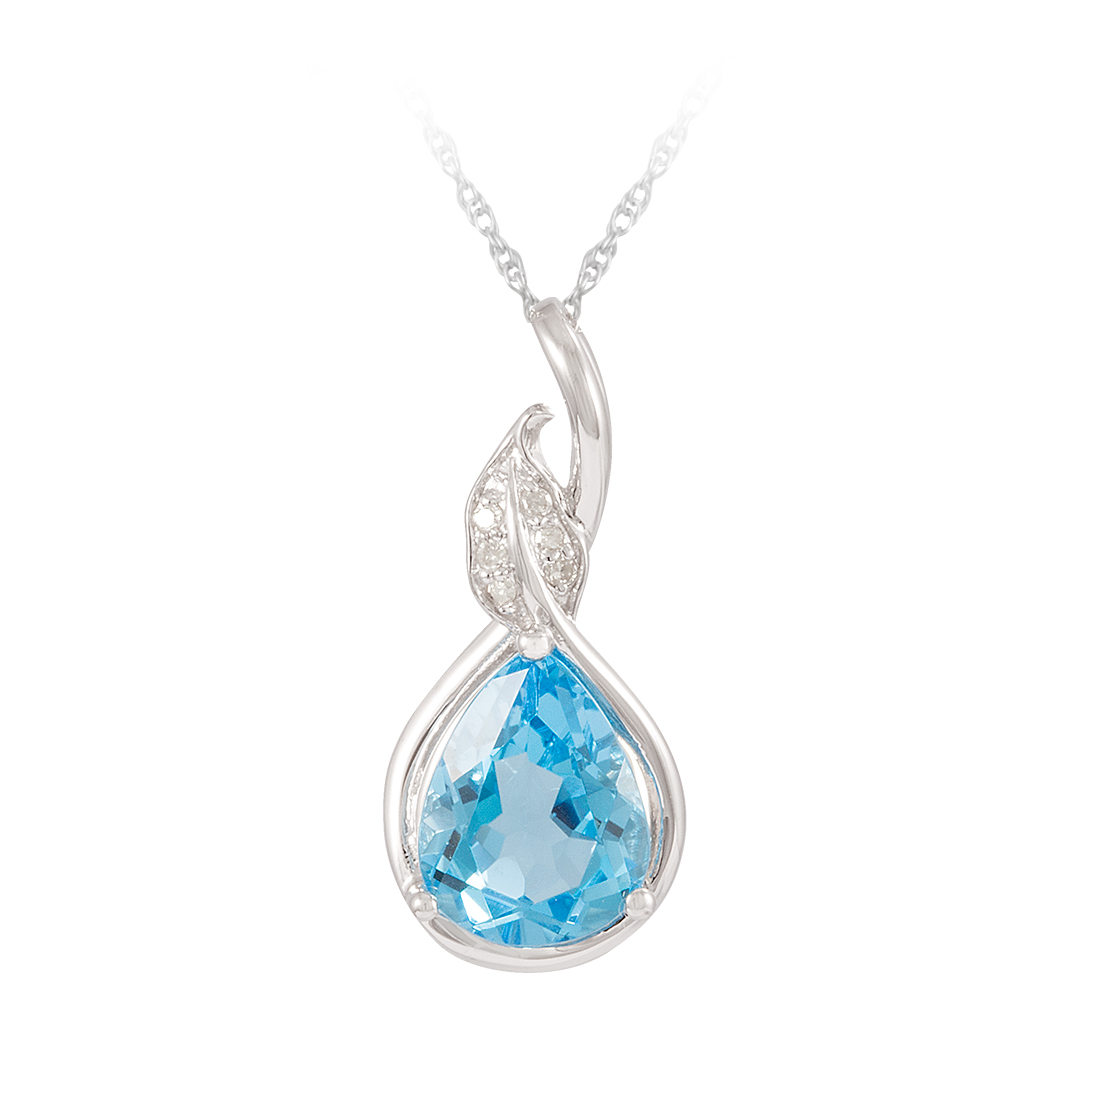 White Gold, Blue Topaz, and Diamond Pendant